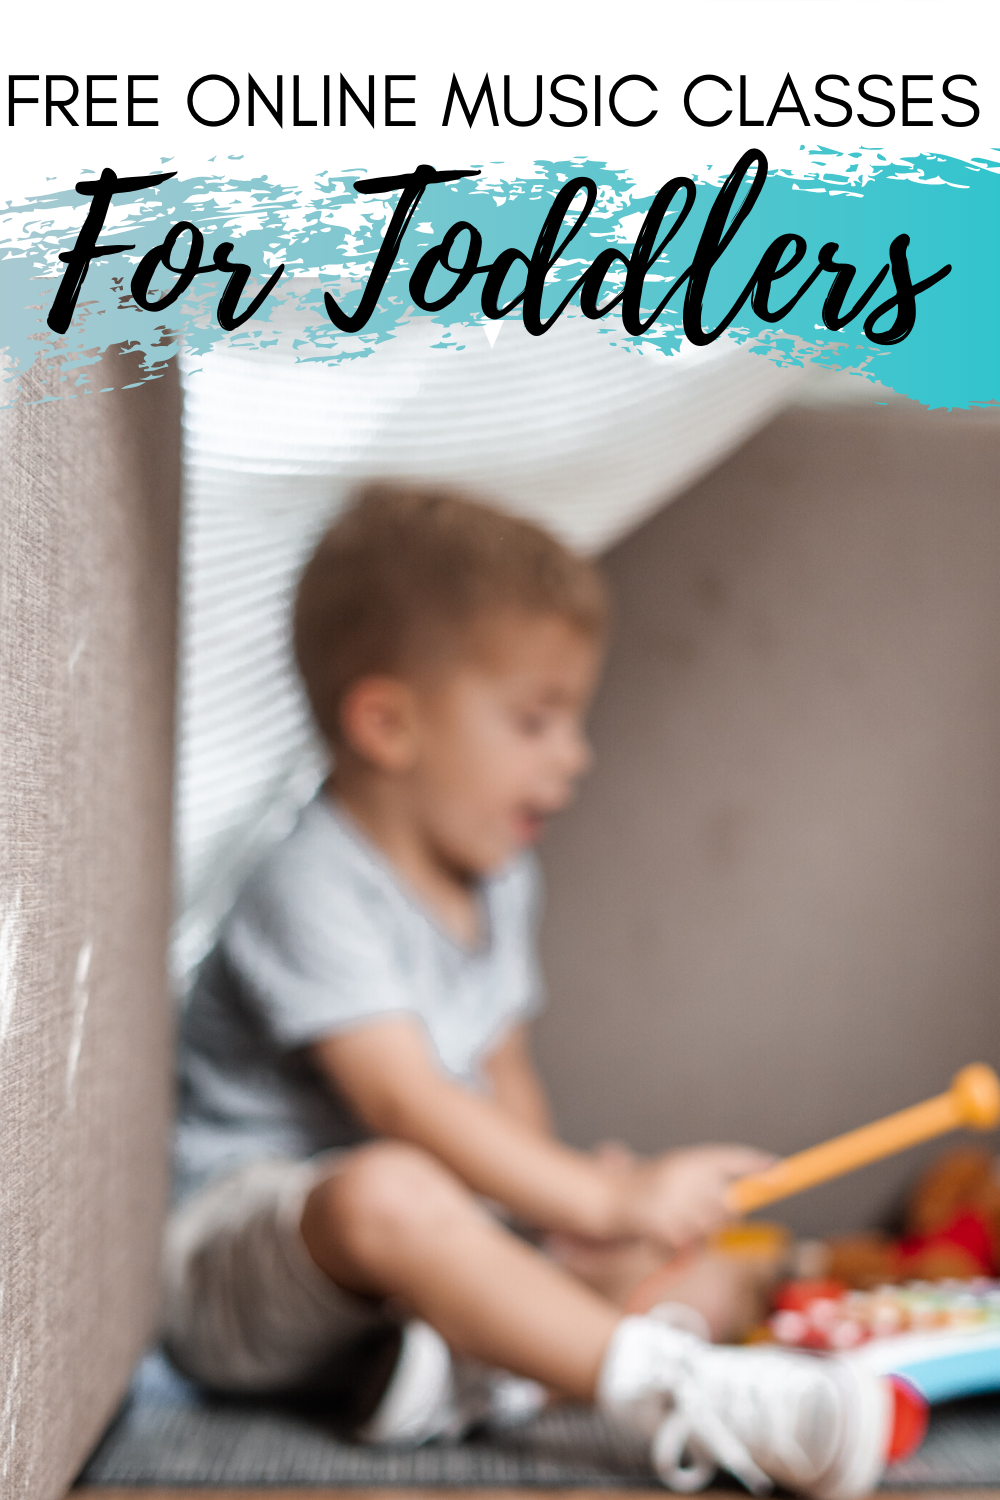 Free online music classes for toddlers